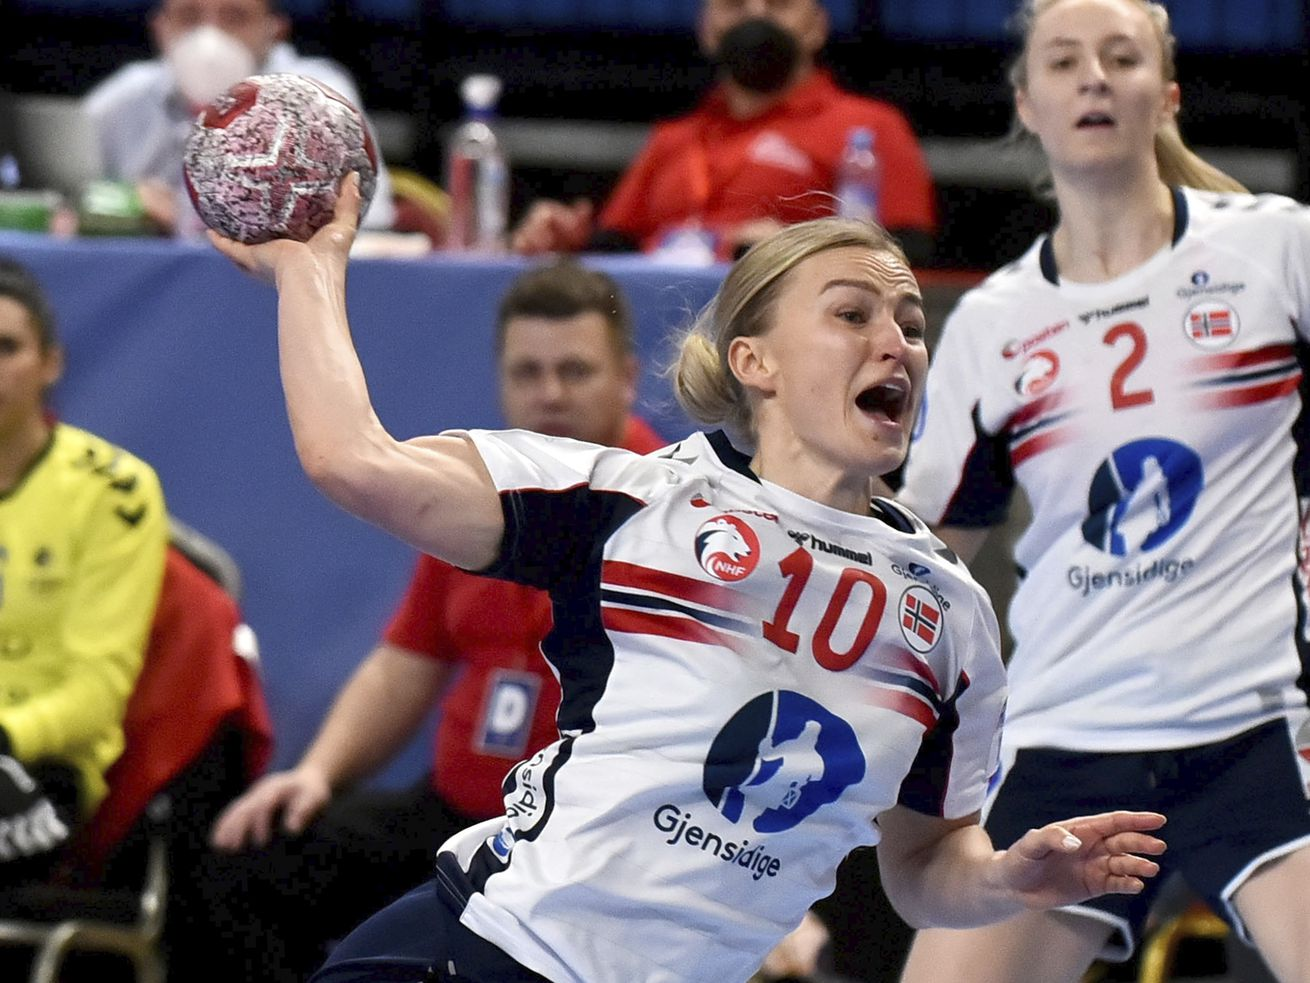 Norway's Stine Bredal Oftedal tries to score during a women's handball Olympic qualifying match between Norway and Romania.